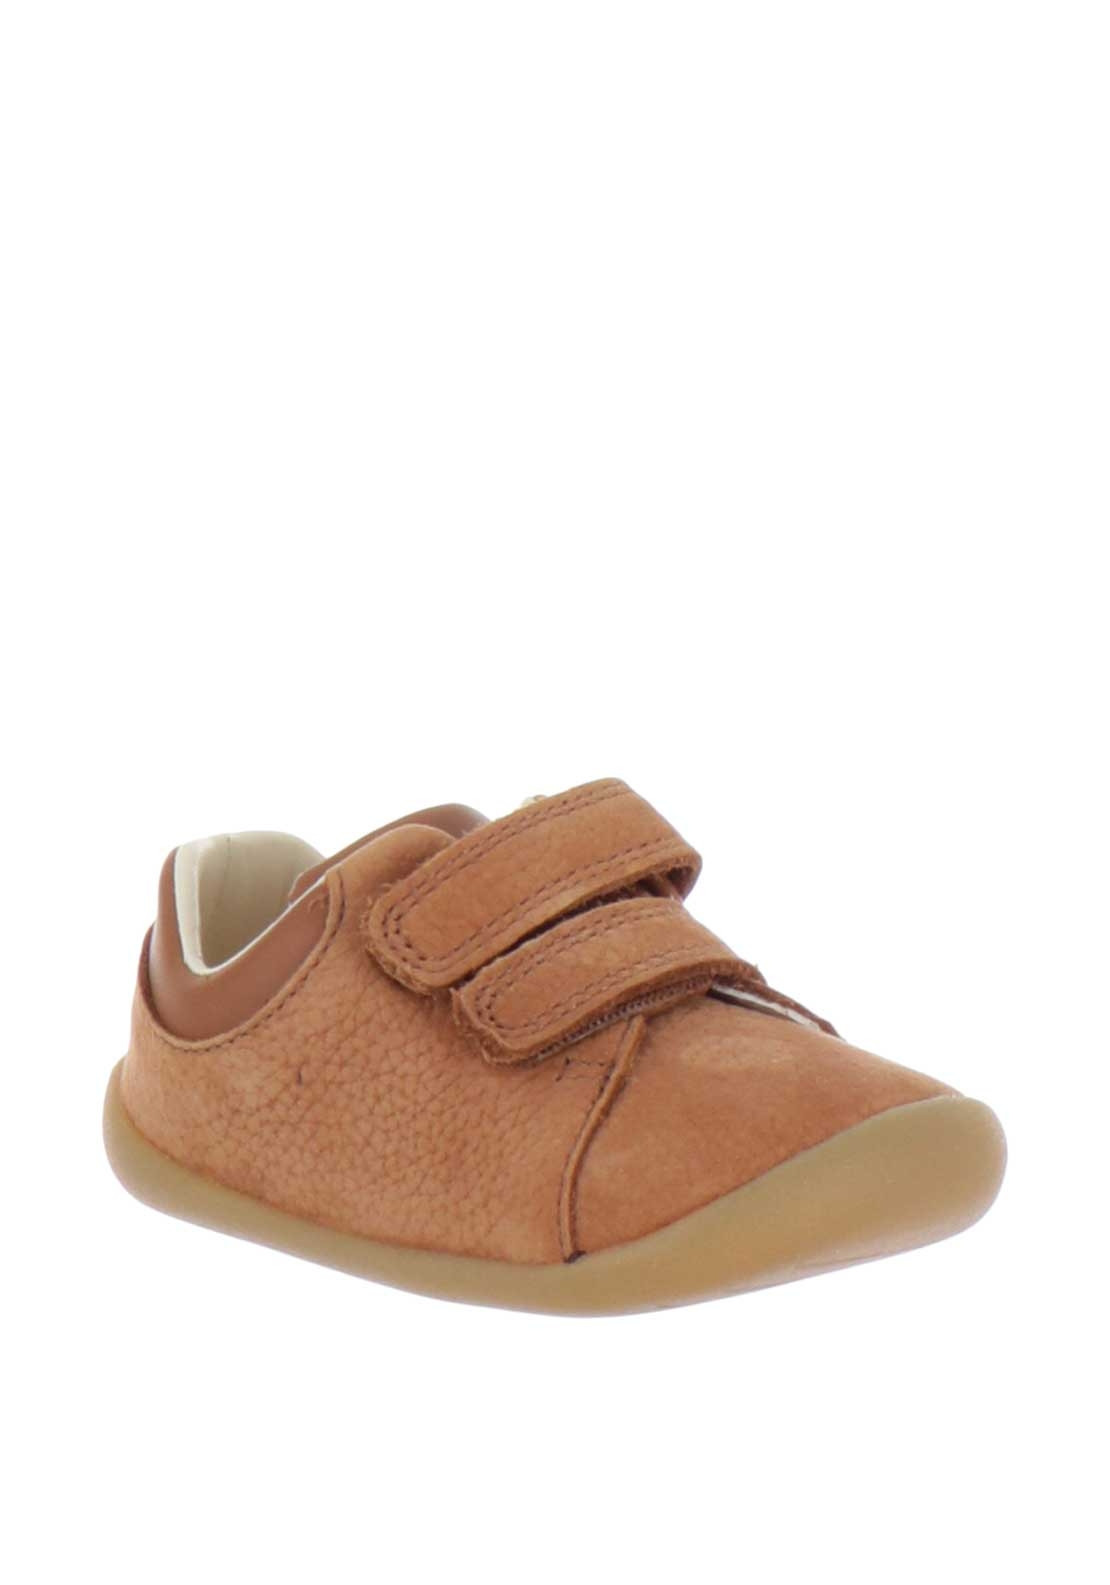 hot-selling discount most popular special buy Clarks Baby Boys Roamer Craft Pre Walking Shoes, Tan